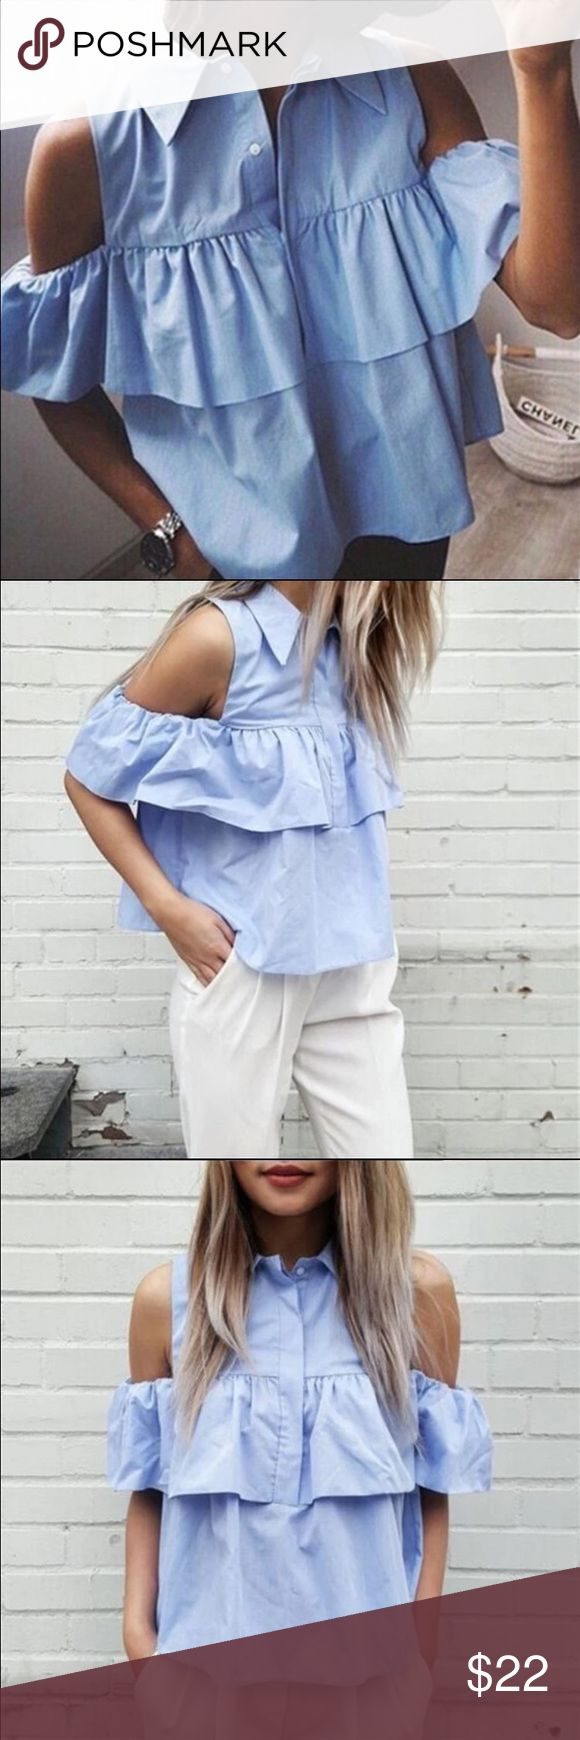 New🔥fashion off shoulder blouse New fashion light blue off shoulder blouse. Buttons down. Available in Small and Medium sizes. No trades❌.                                      Bundle it!✅  Questions about product are welcome✅ Tops Blouses